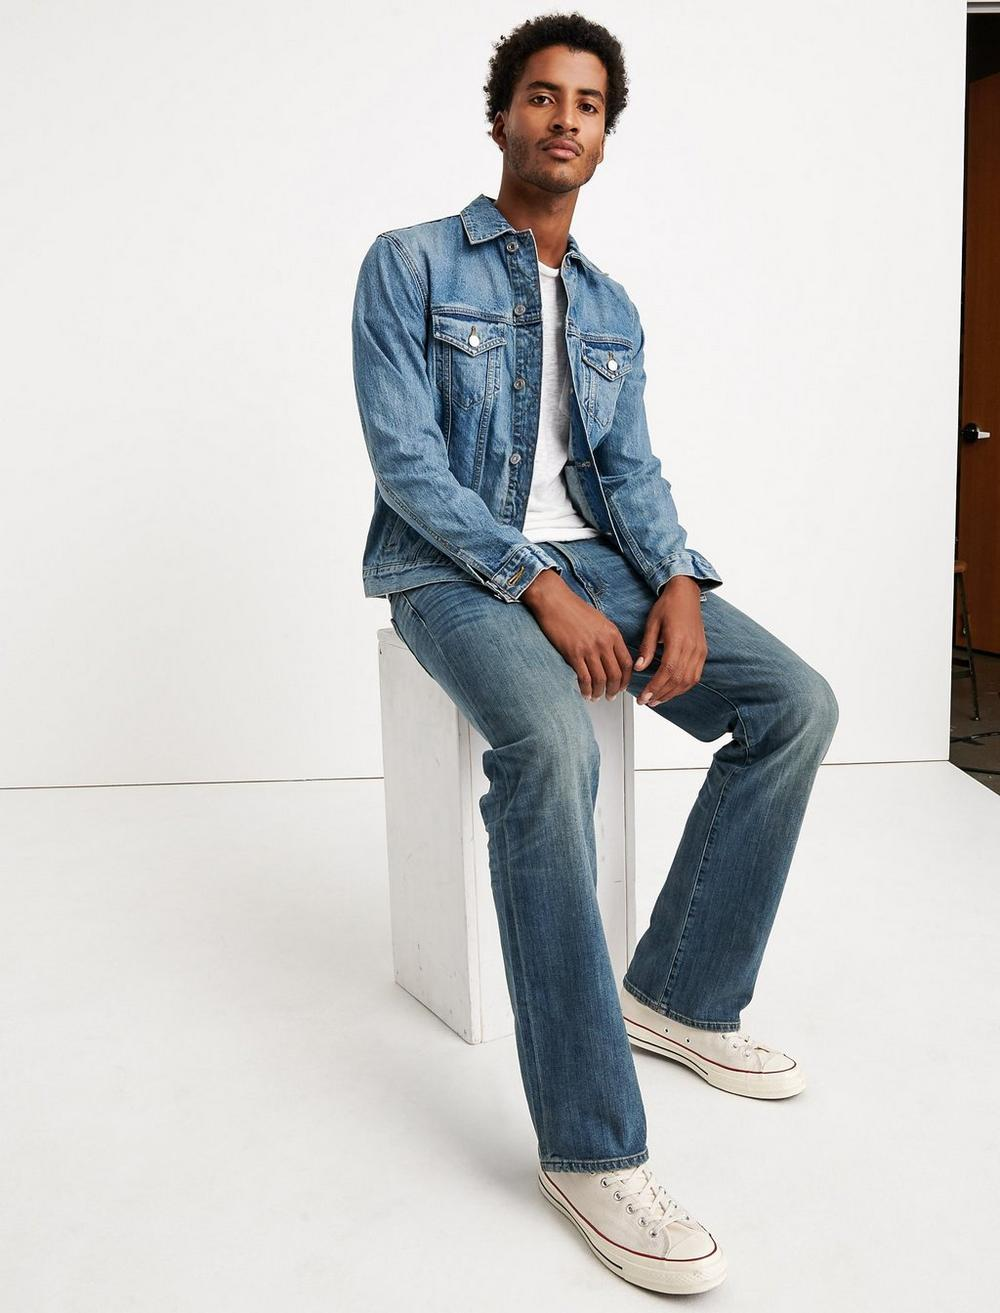 181 RELAXED STRAIGHT JEAN, image 4